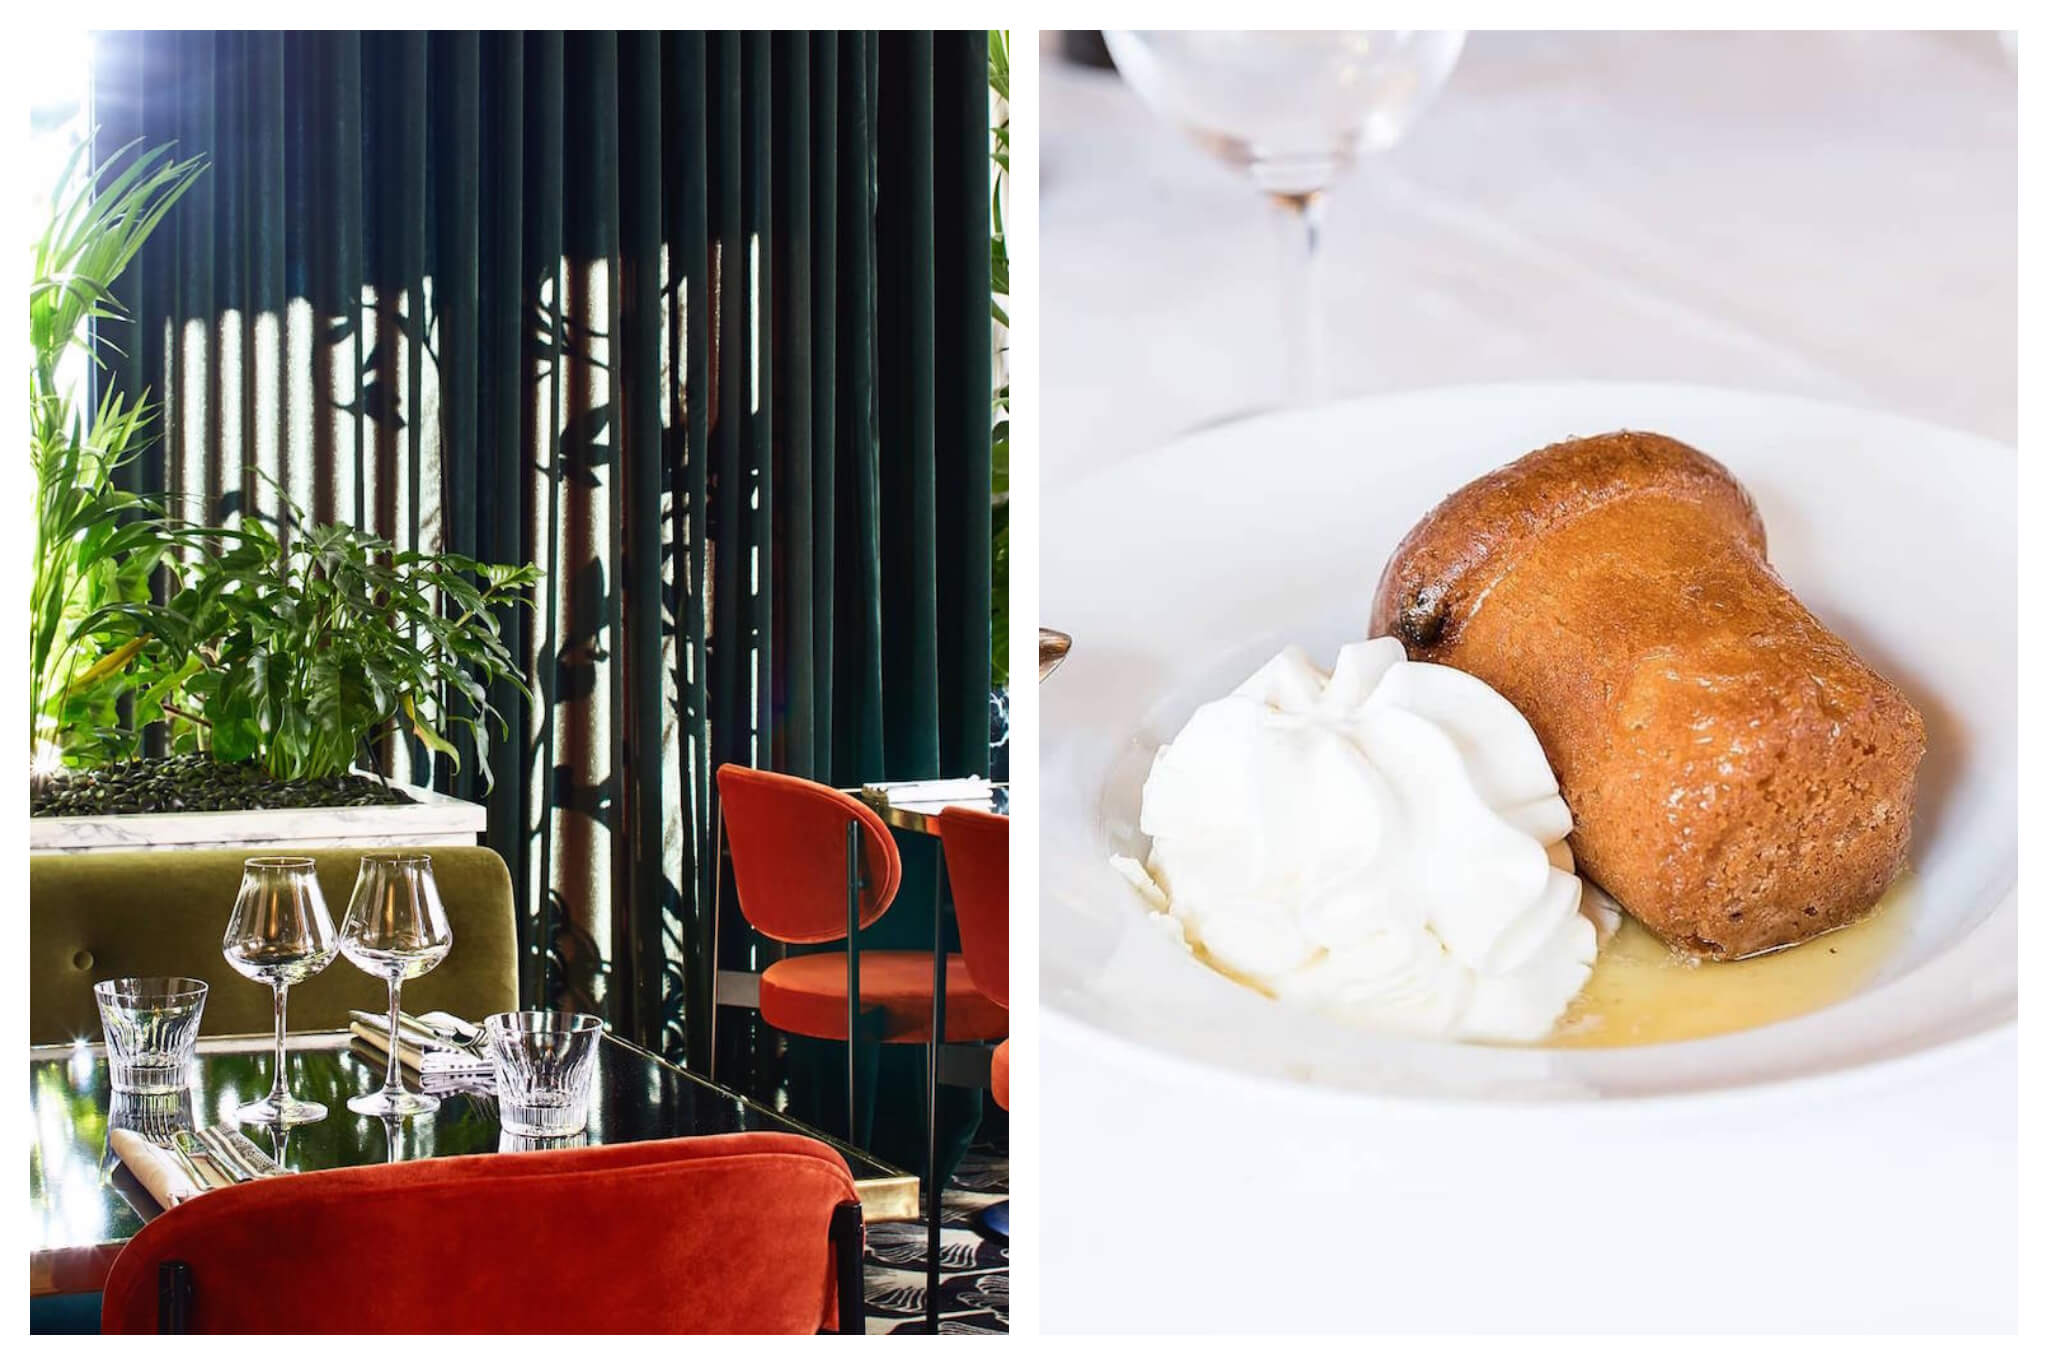 Left: The inside of Chez André near the Champs Elysées in Paris. There is a large dark curtain, plants, and orange chairs, Right: A plate of dessert, which appears to be a small cake and dollop of whipped cream, sits on a white tablecloth at Chez André